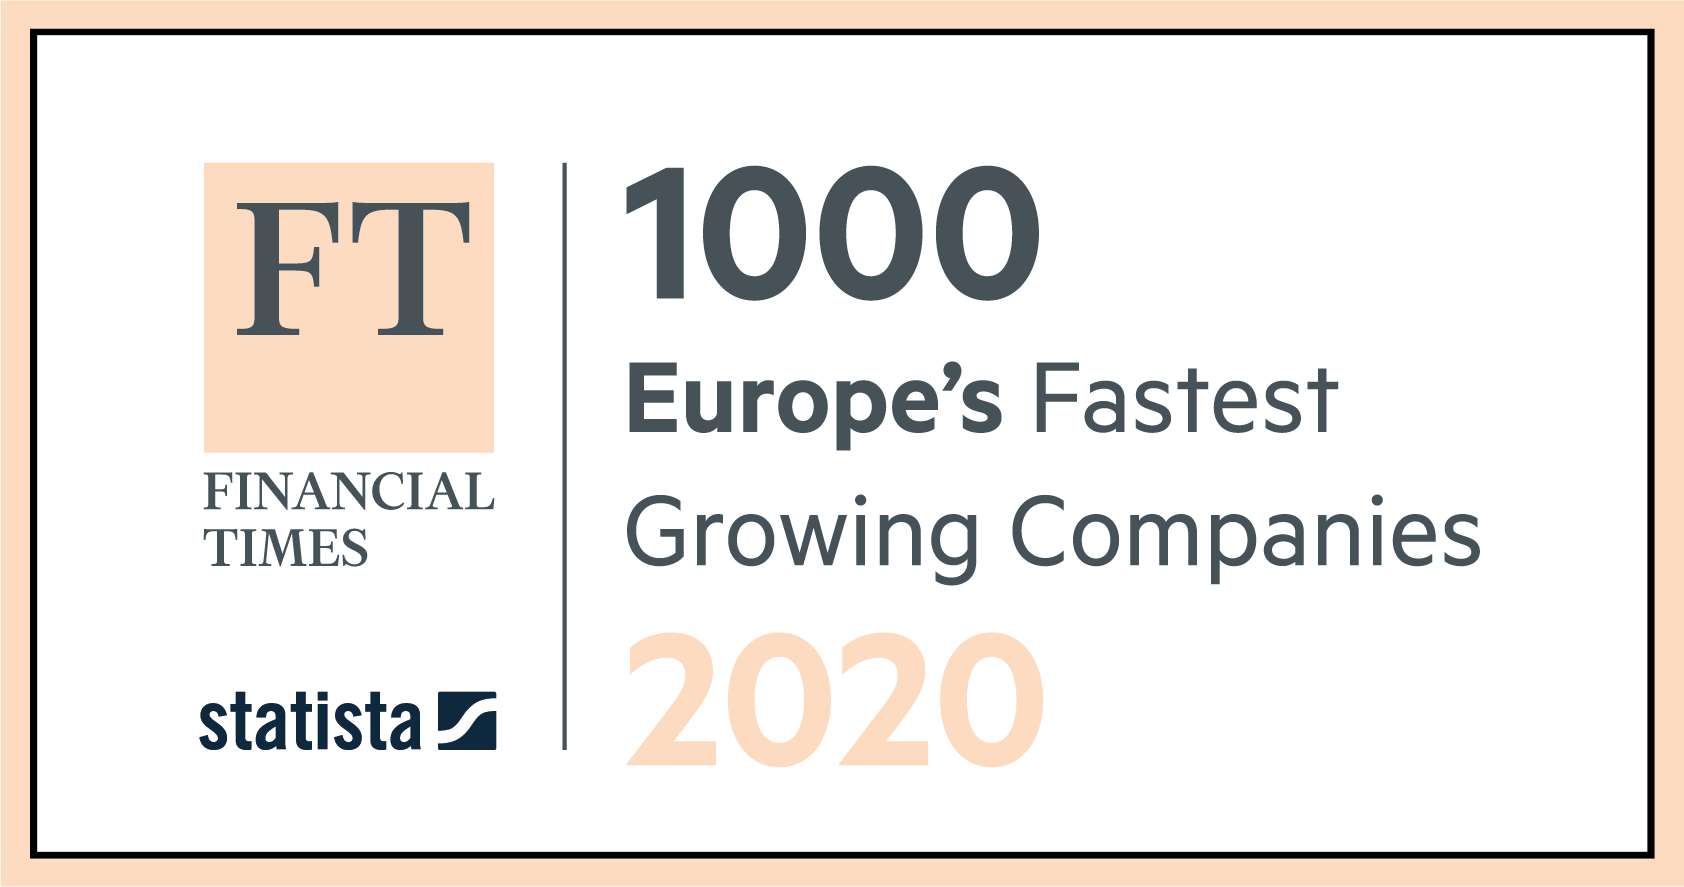 Siegel Financial Times Europe's Fastest Growing Companies 2020